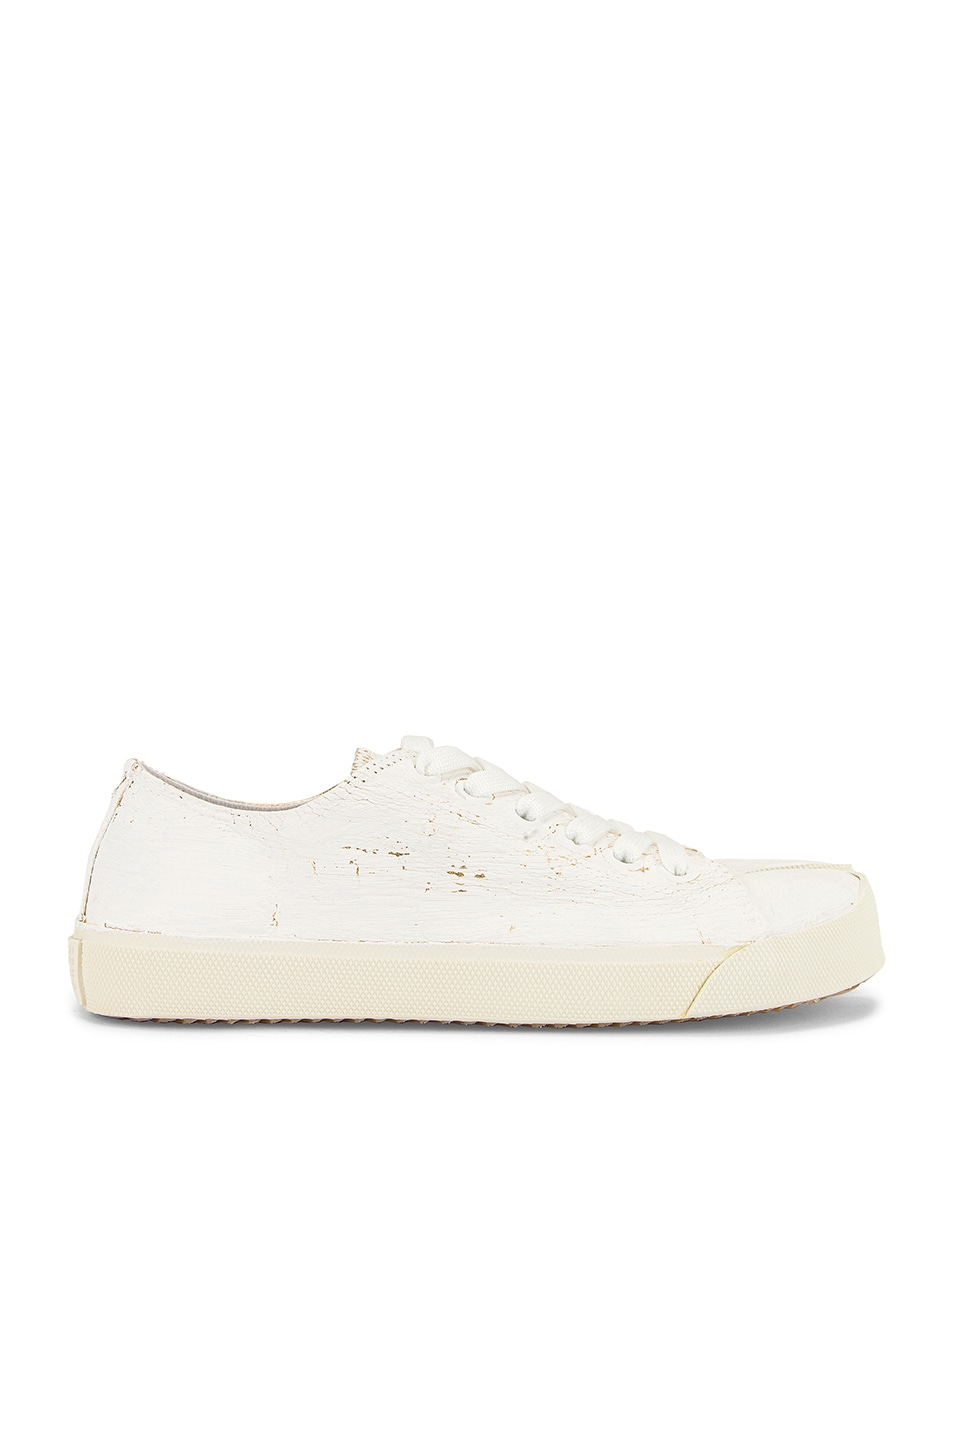 Image 2 of Maison Margiela Low Top Tabi Sneakers in White & Gold